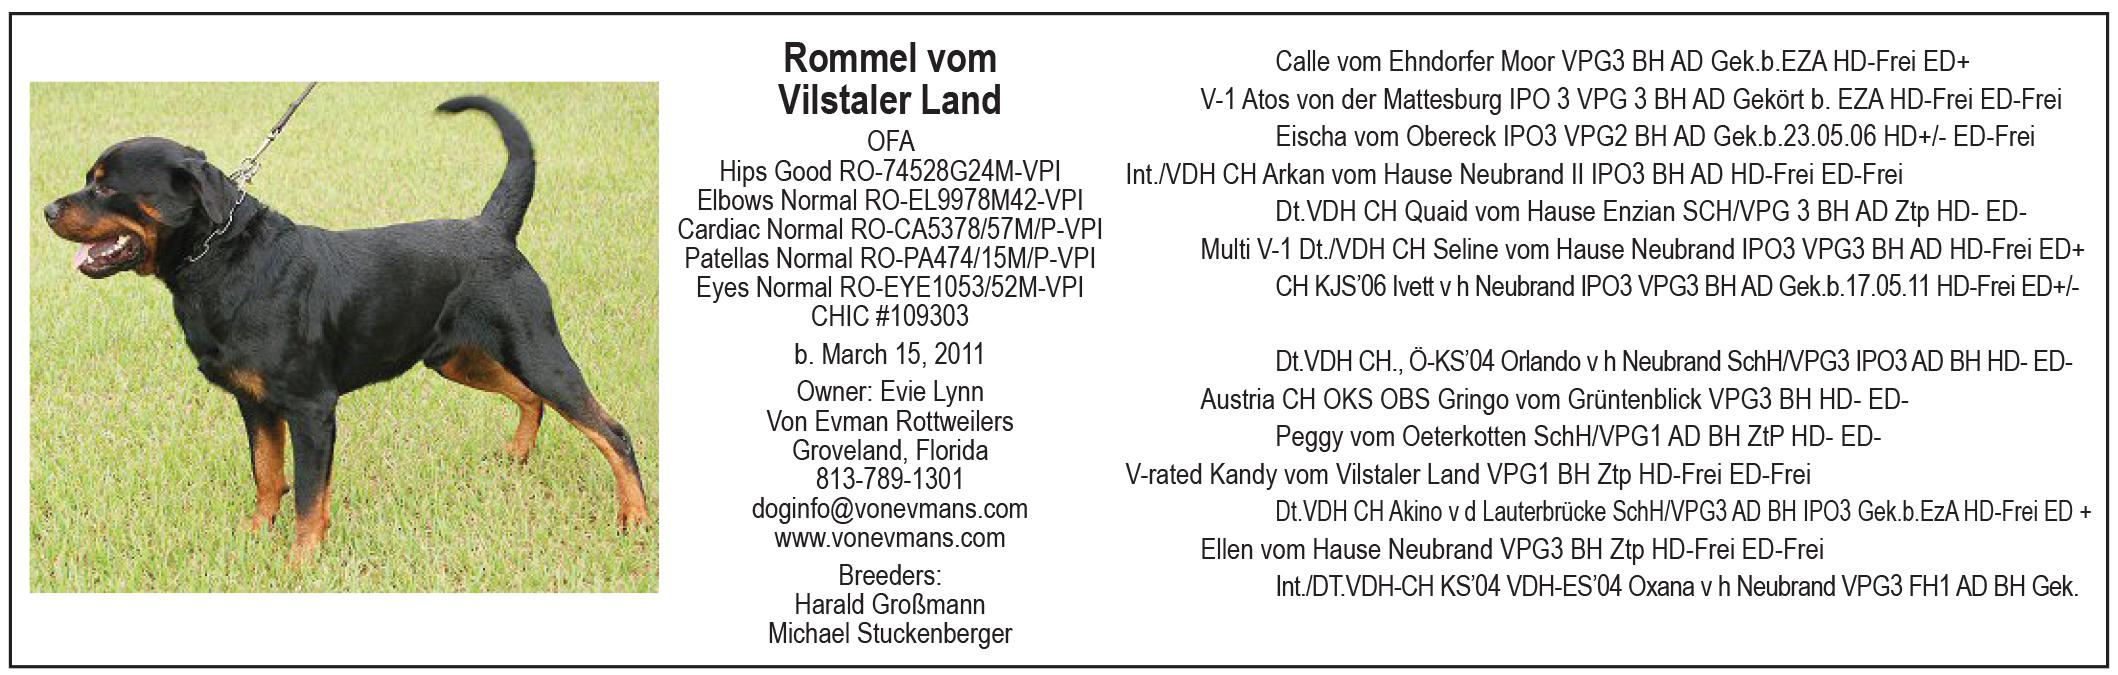 Rommel Vom Vilstaler Land The Total Rottweiler Magazine